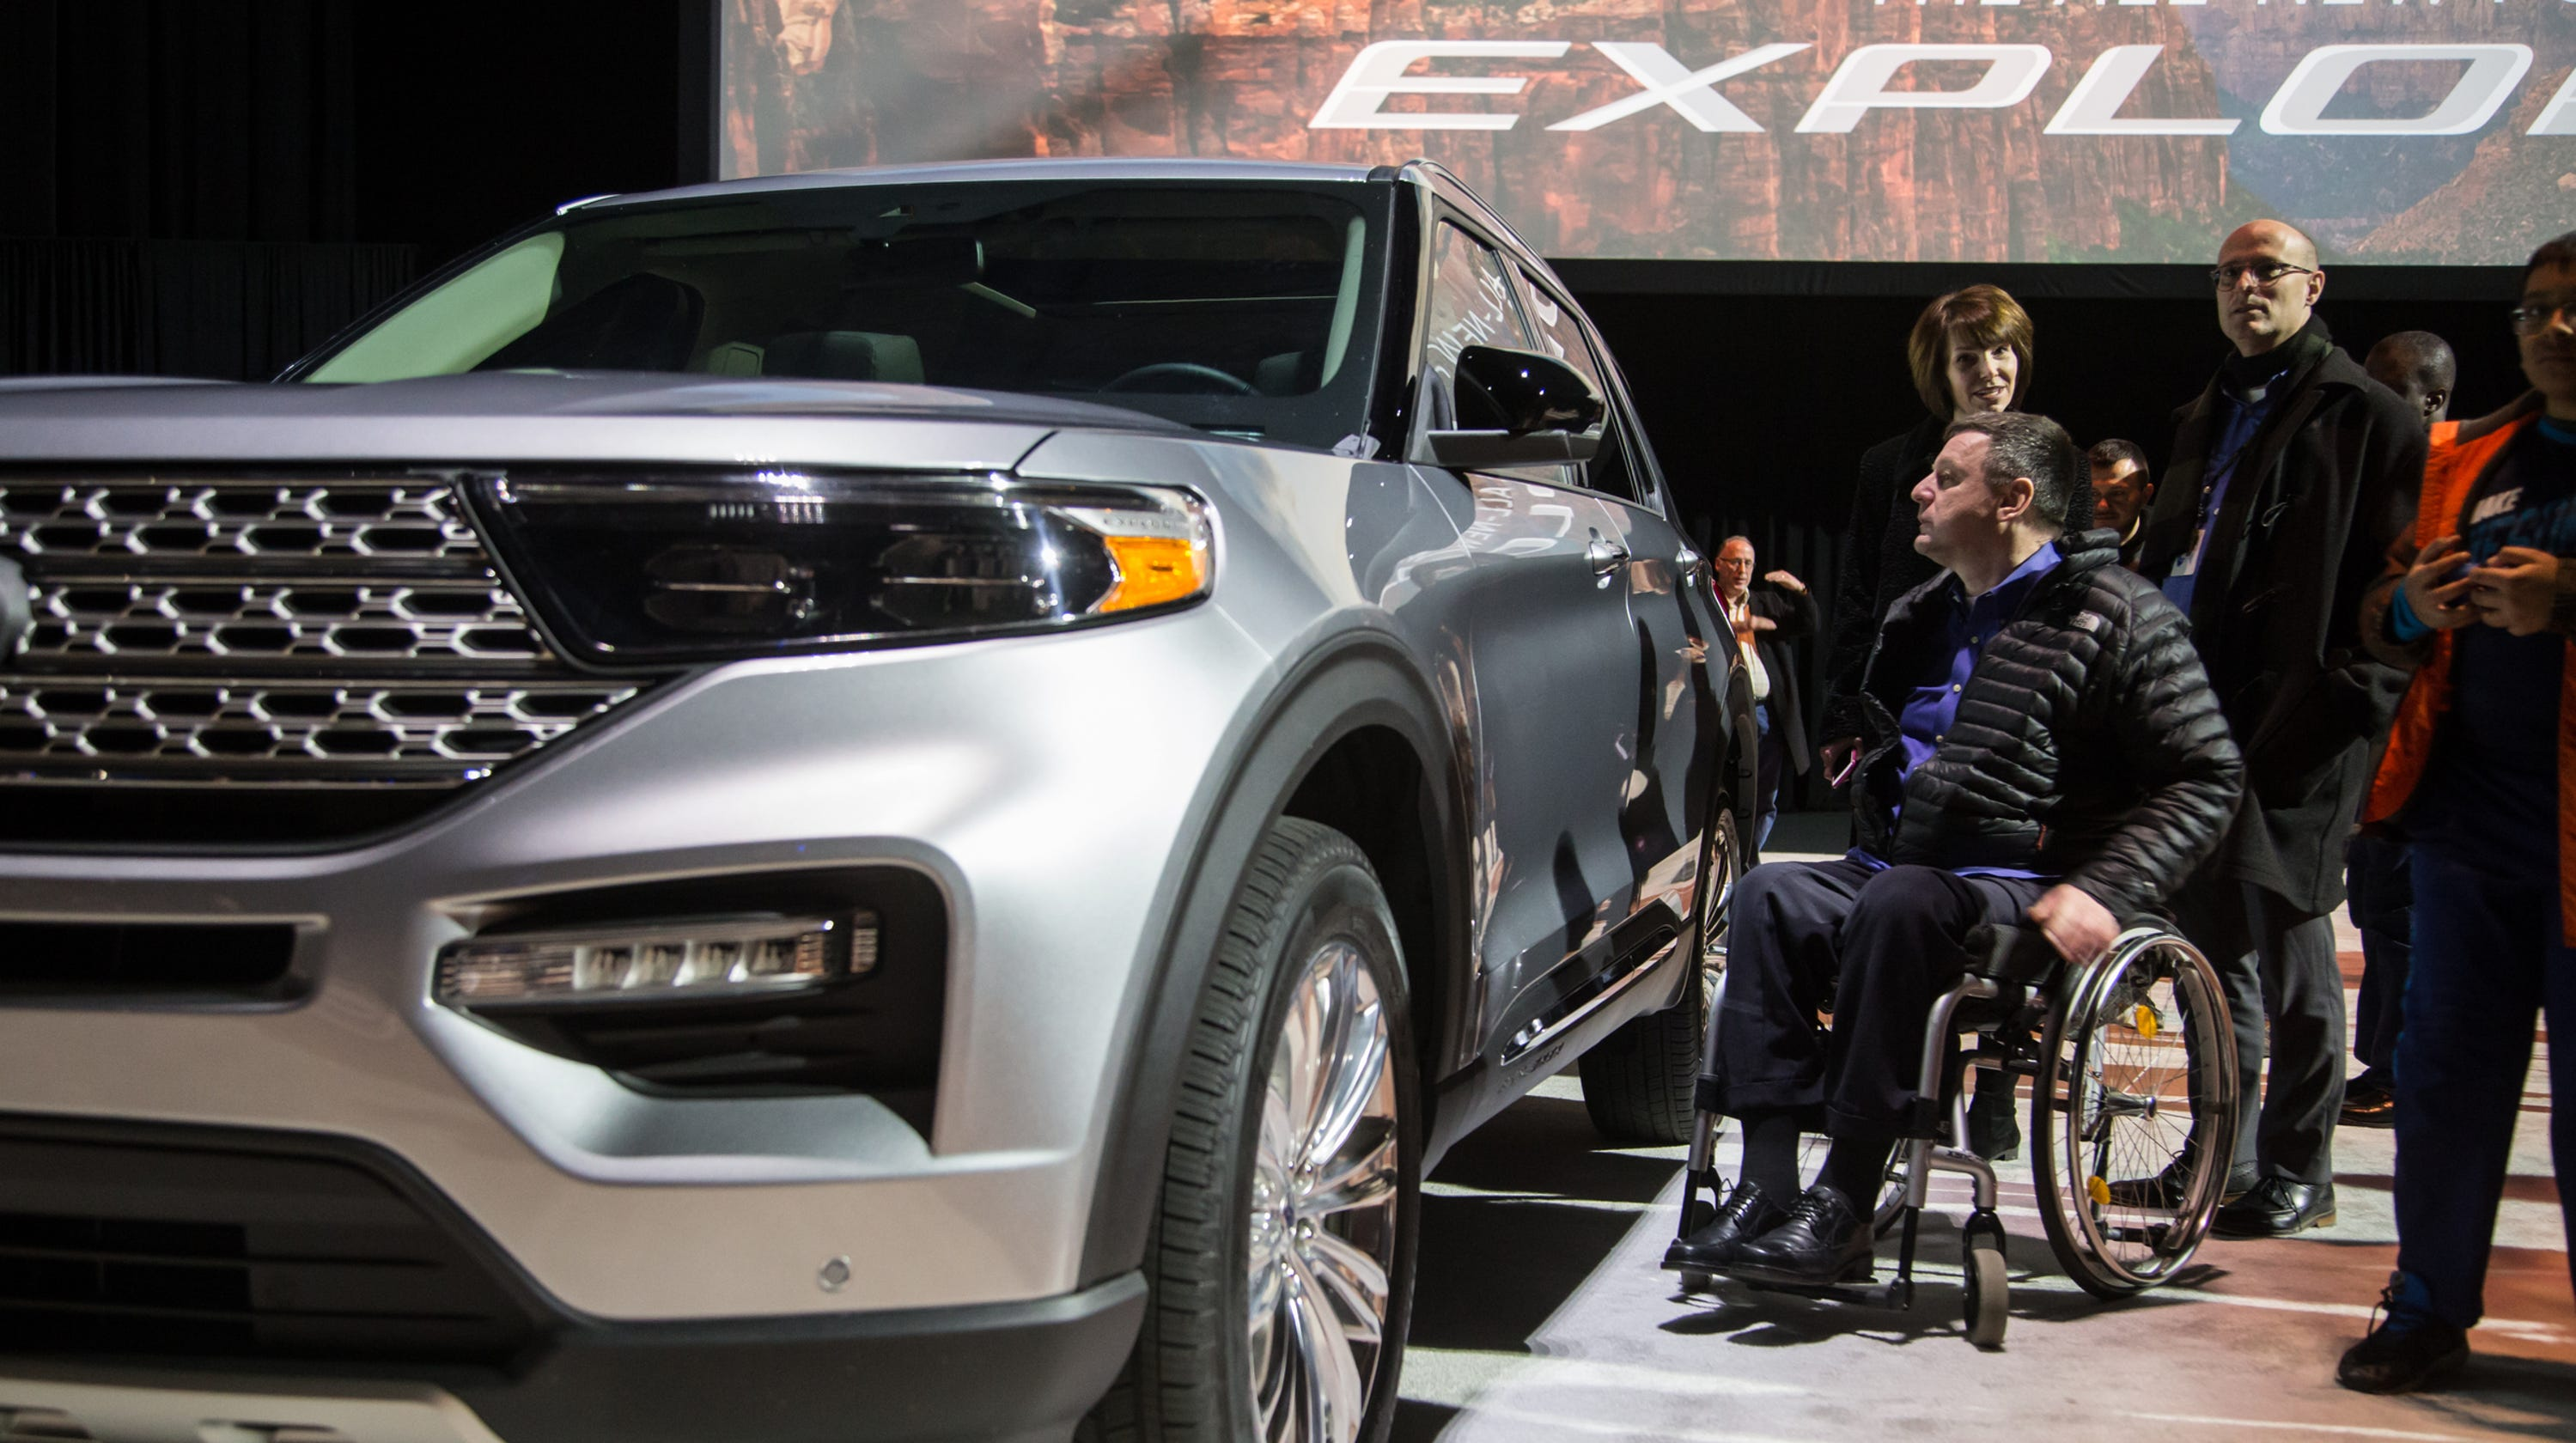 2020 Ford Explorer Uses Luxury Vehicle Engineering To Offer Performance